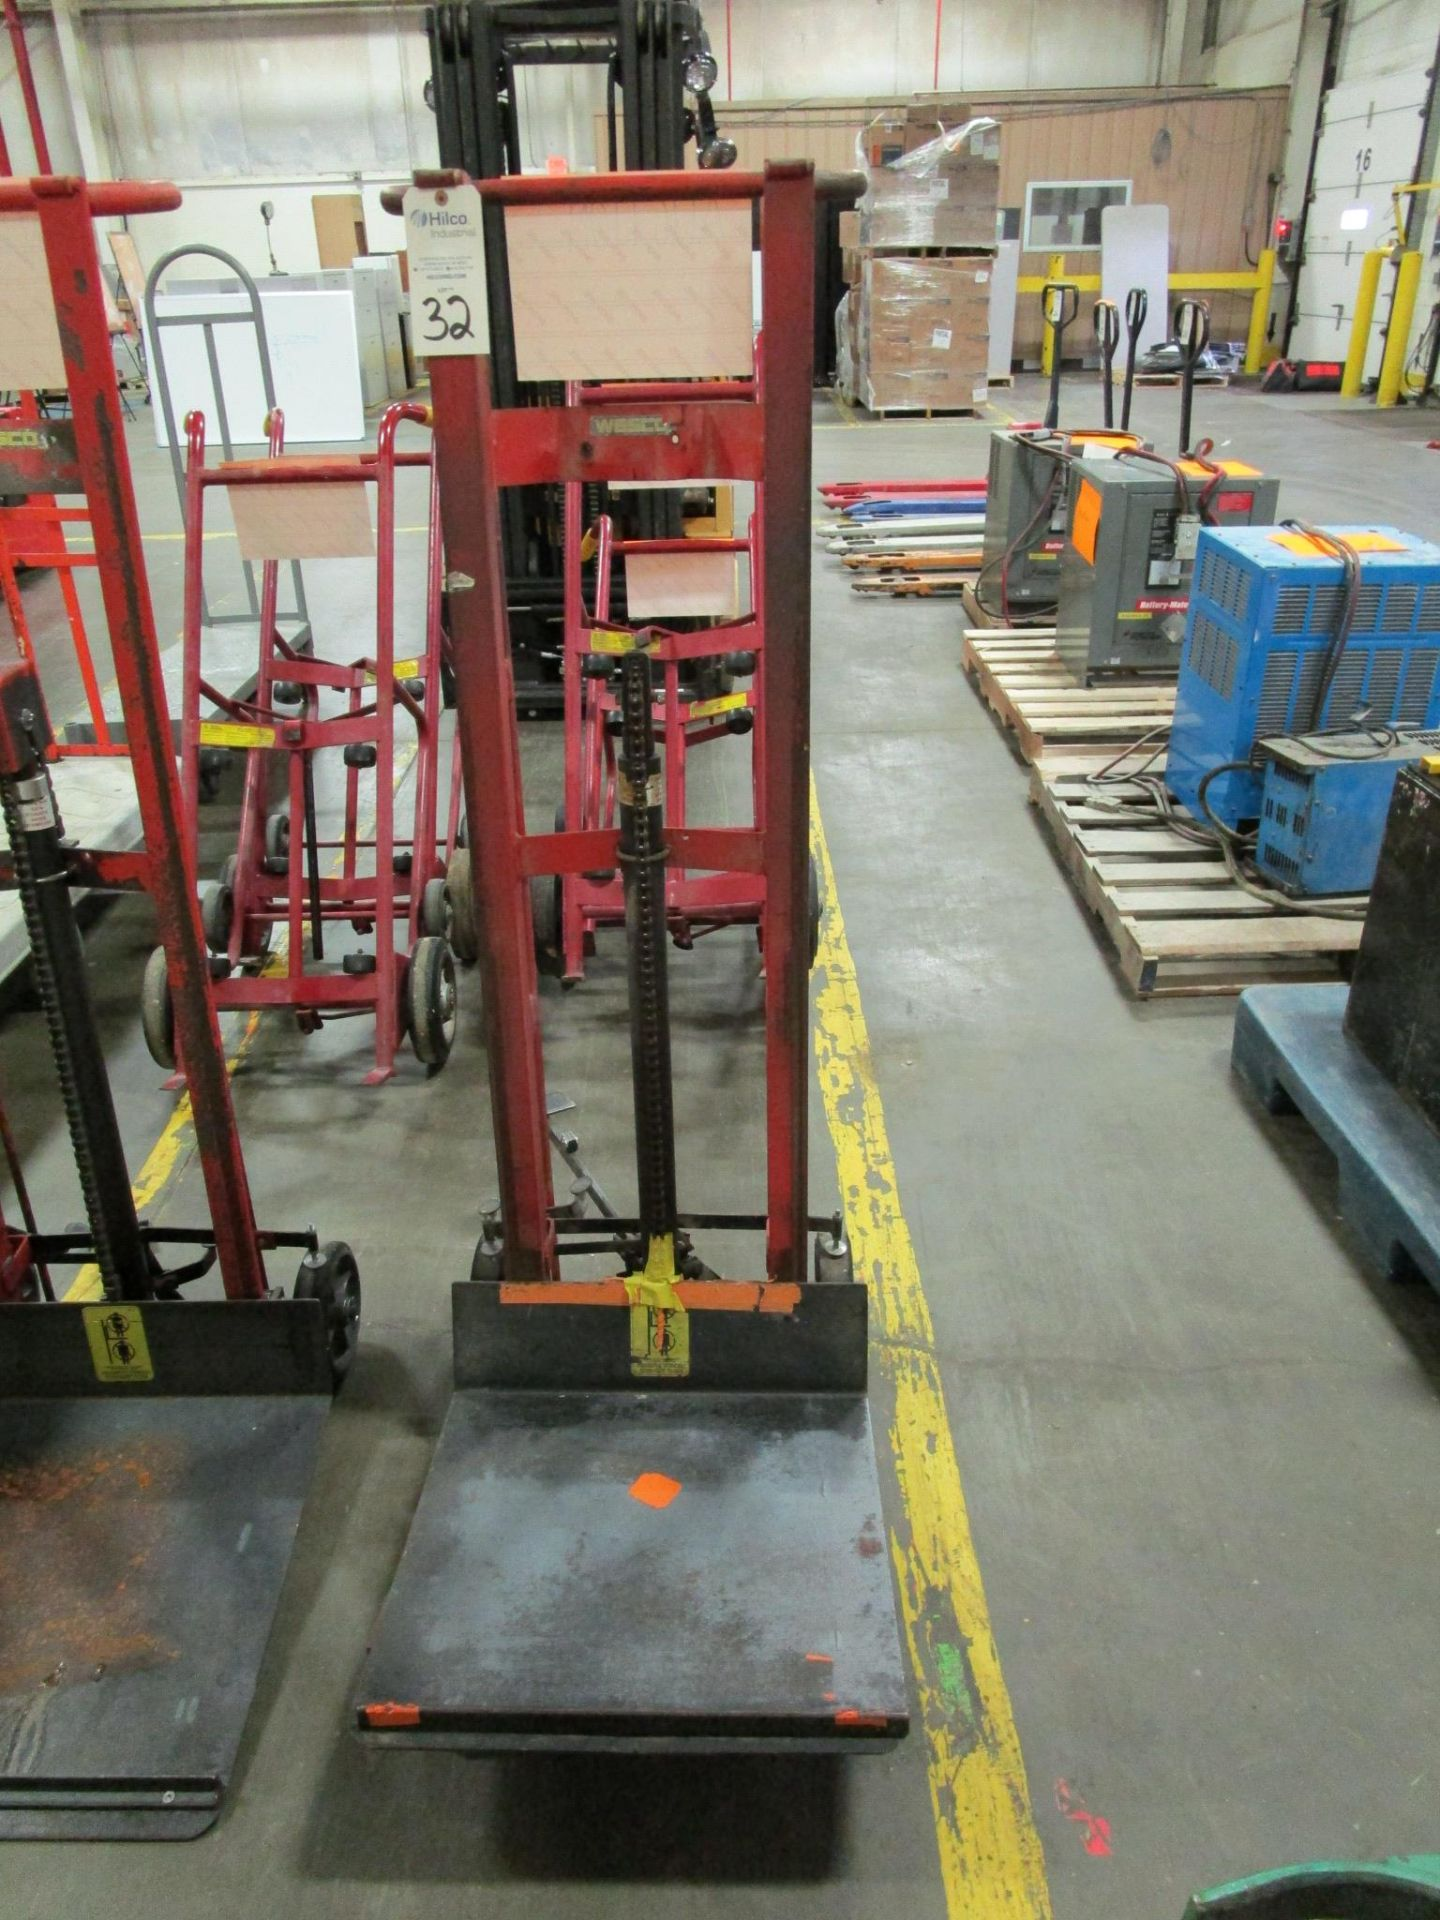 Lot 32 - Wesco Model DPL 5422 750 Lb. Platform Lift